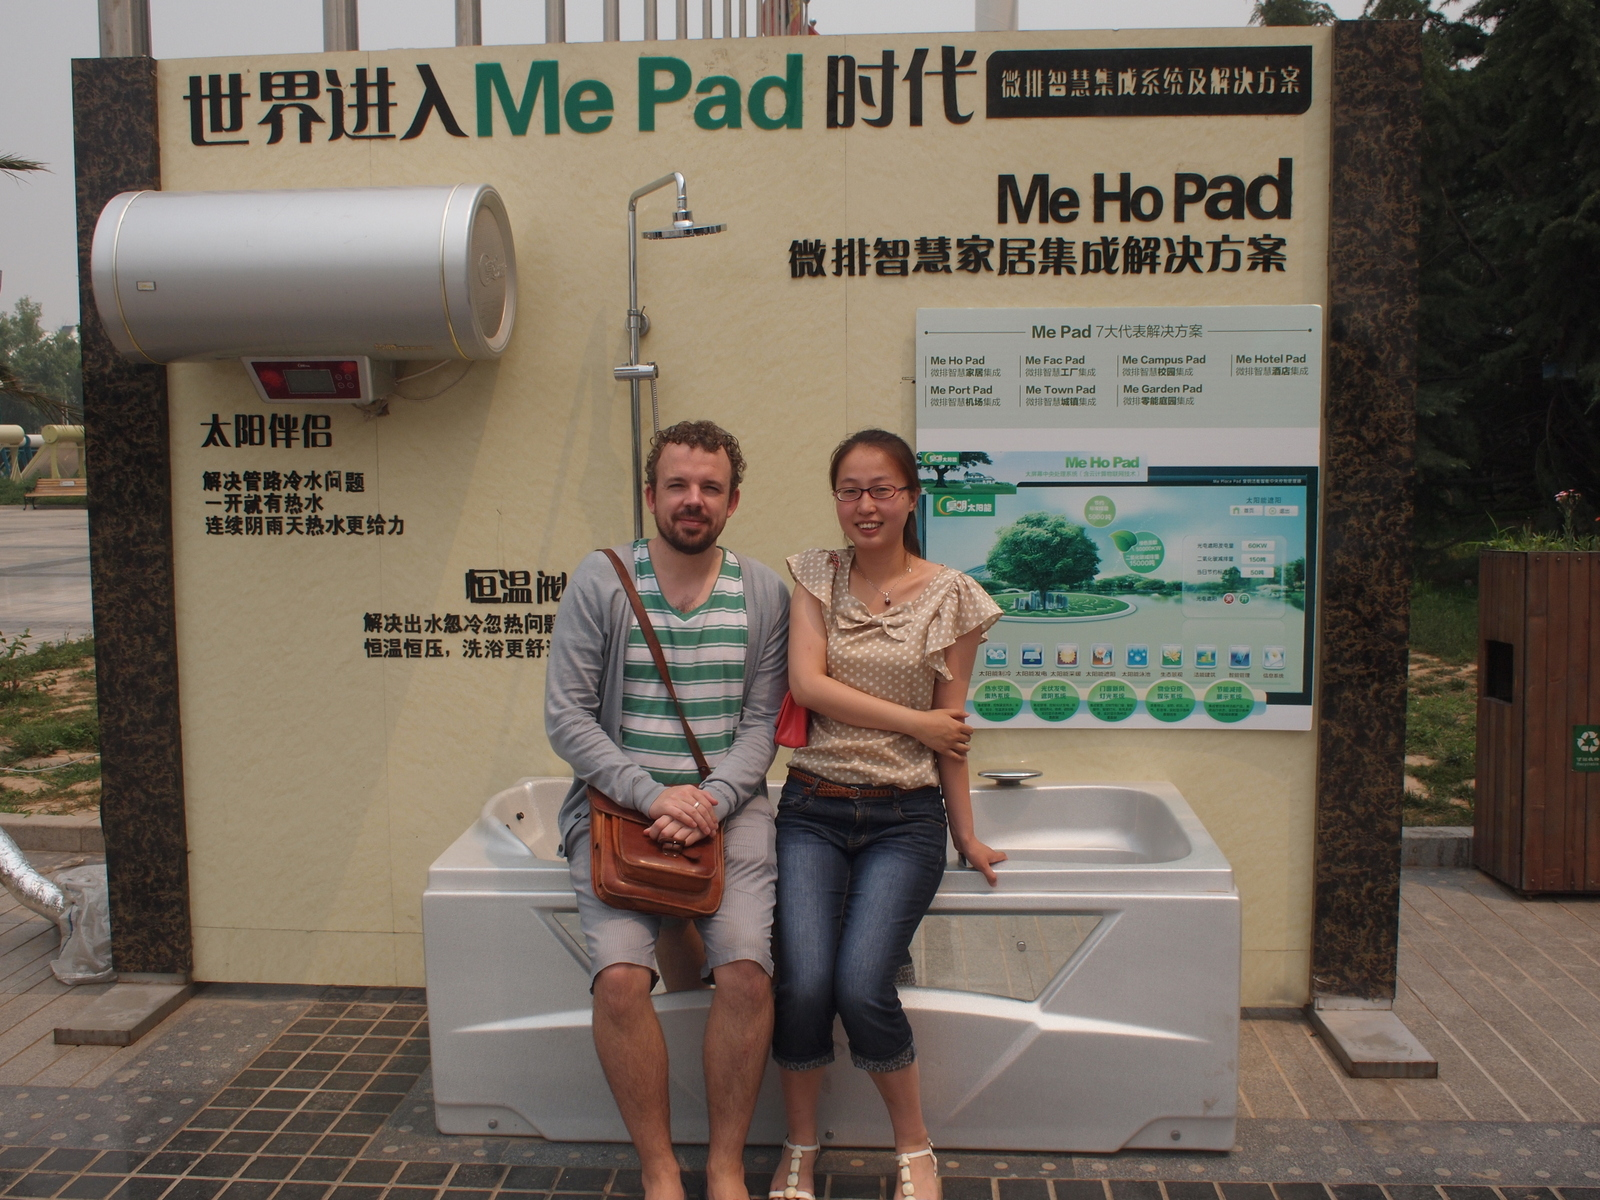 Me and guide at the solar panel factory museum